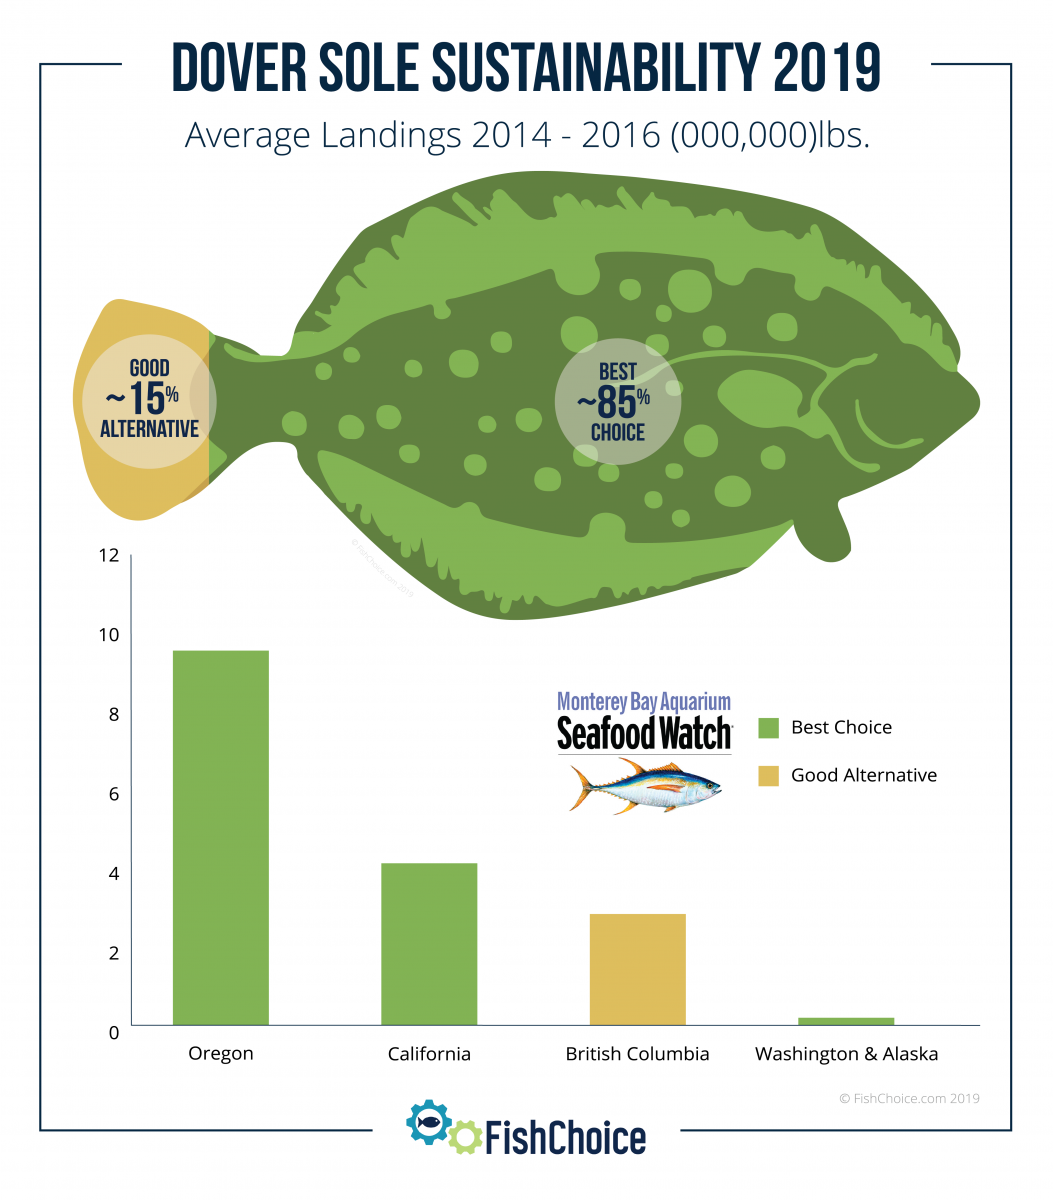 Dover Sole Sustainability